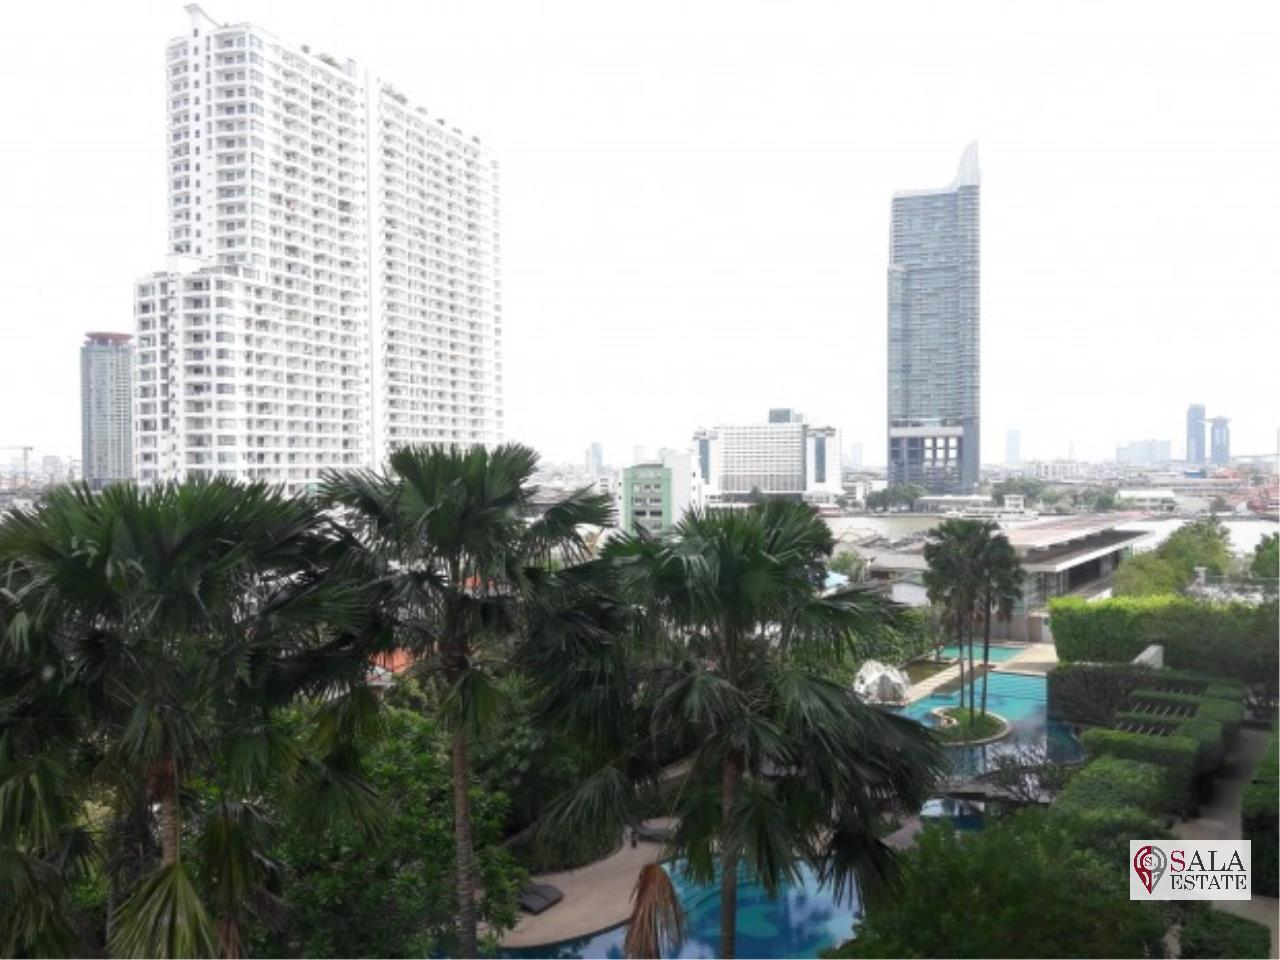 SALA ESTATE Agency's WATERMARK CHAOPHRAYA RIVER – RIVERSIDE-NEAR ICON SIAM,豪华公寓,河景房, 3卧3卫,家具齐全 9